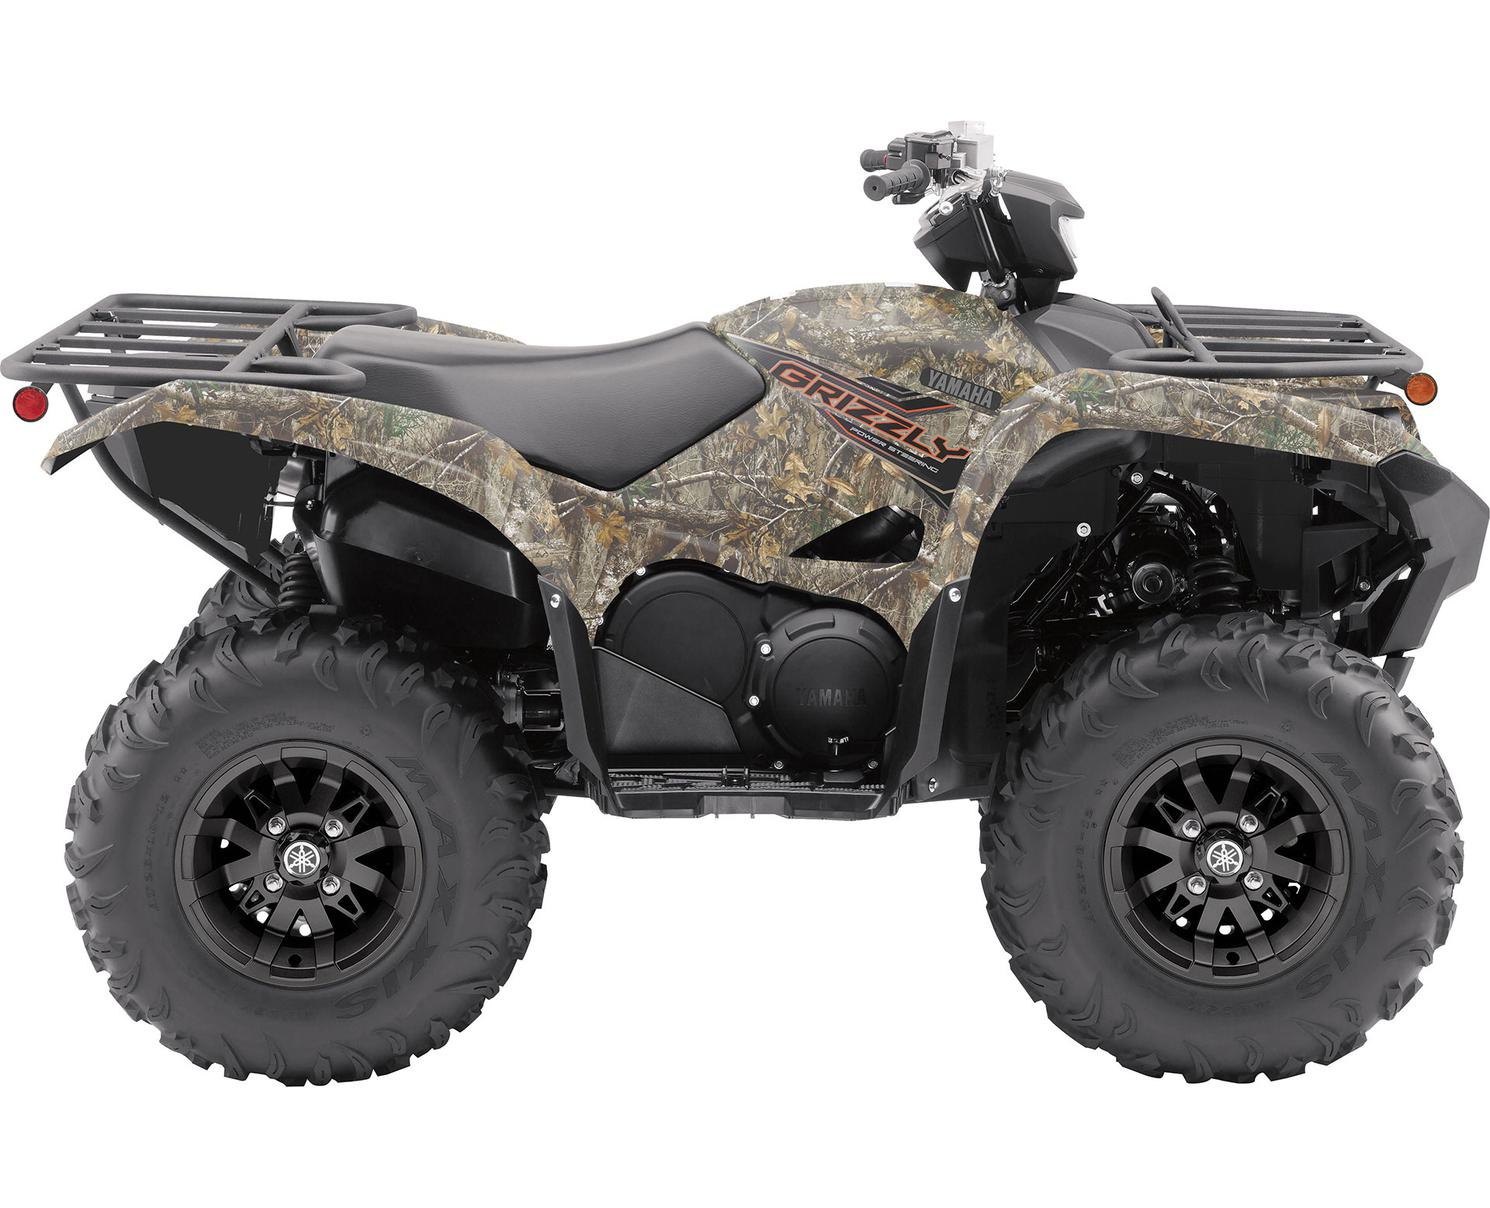 2021 Yamaha Grizzly EPS Realtree Edge Camouflage